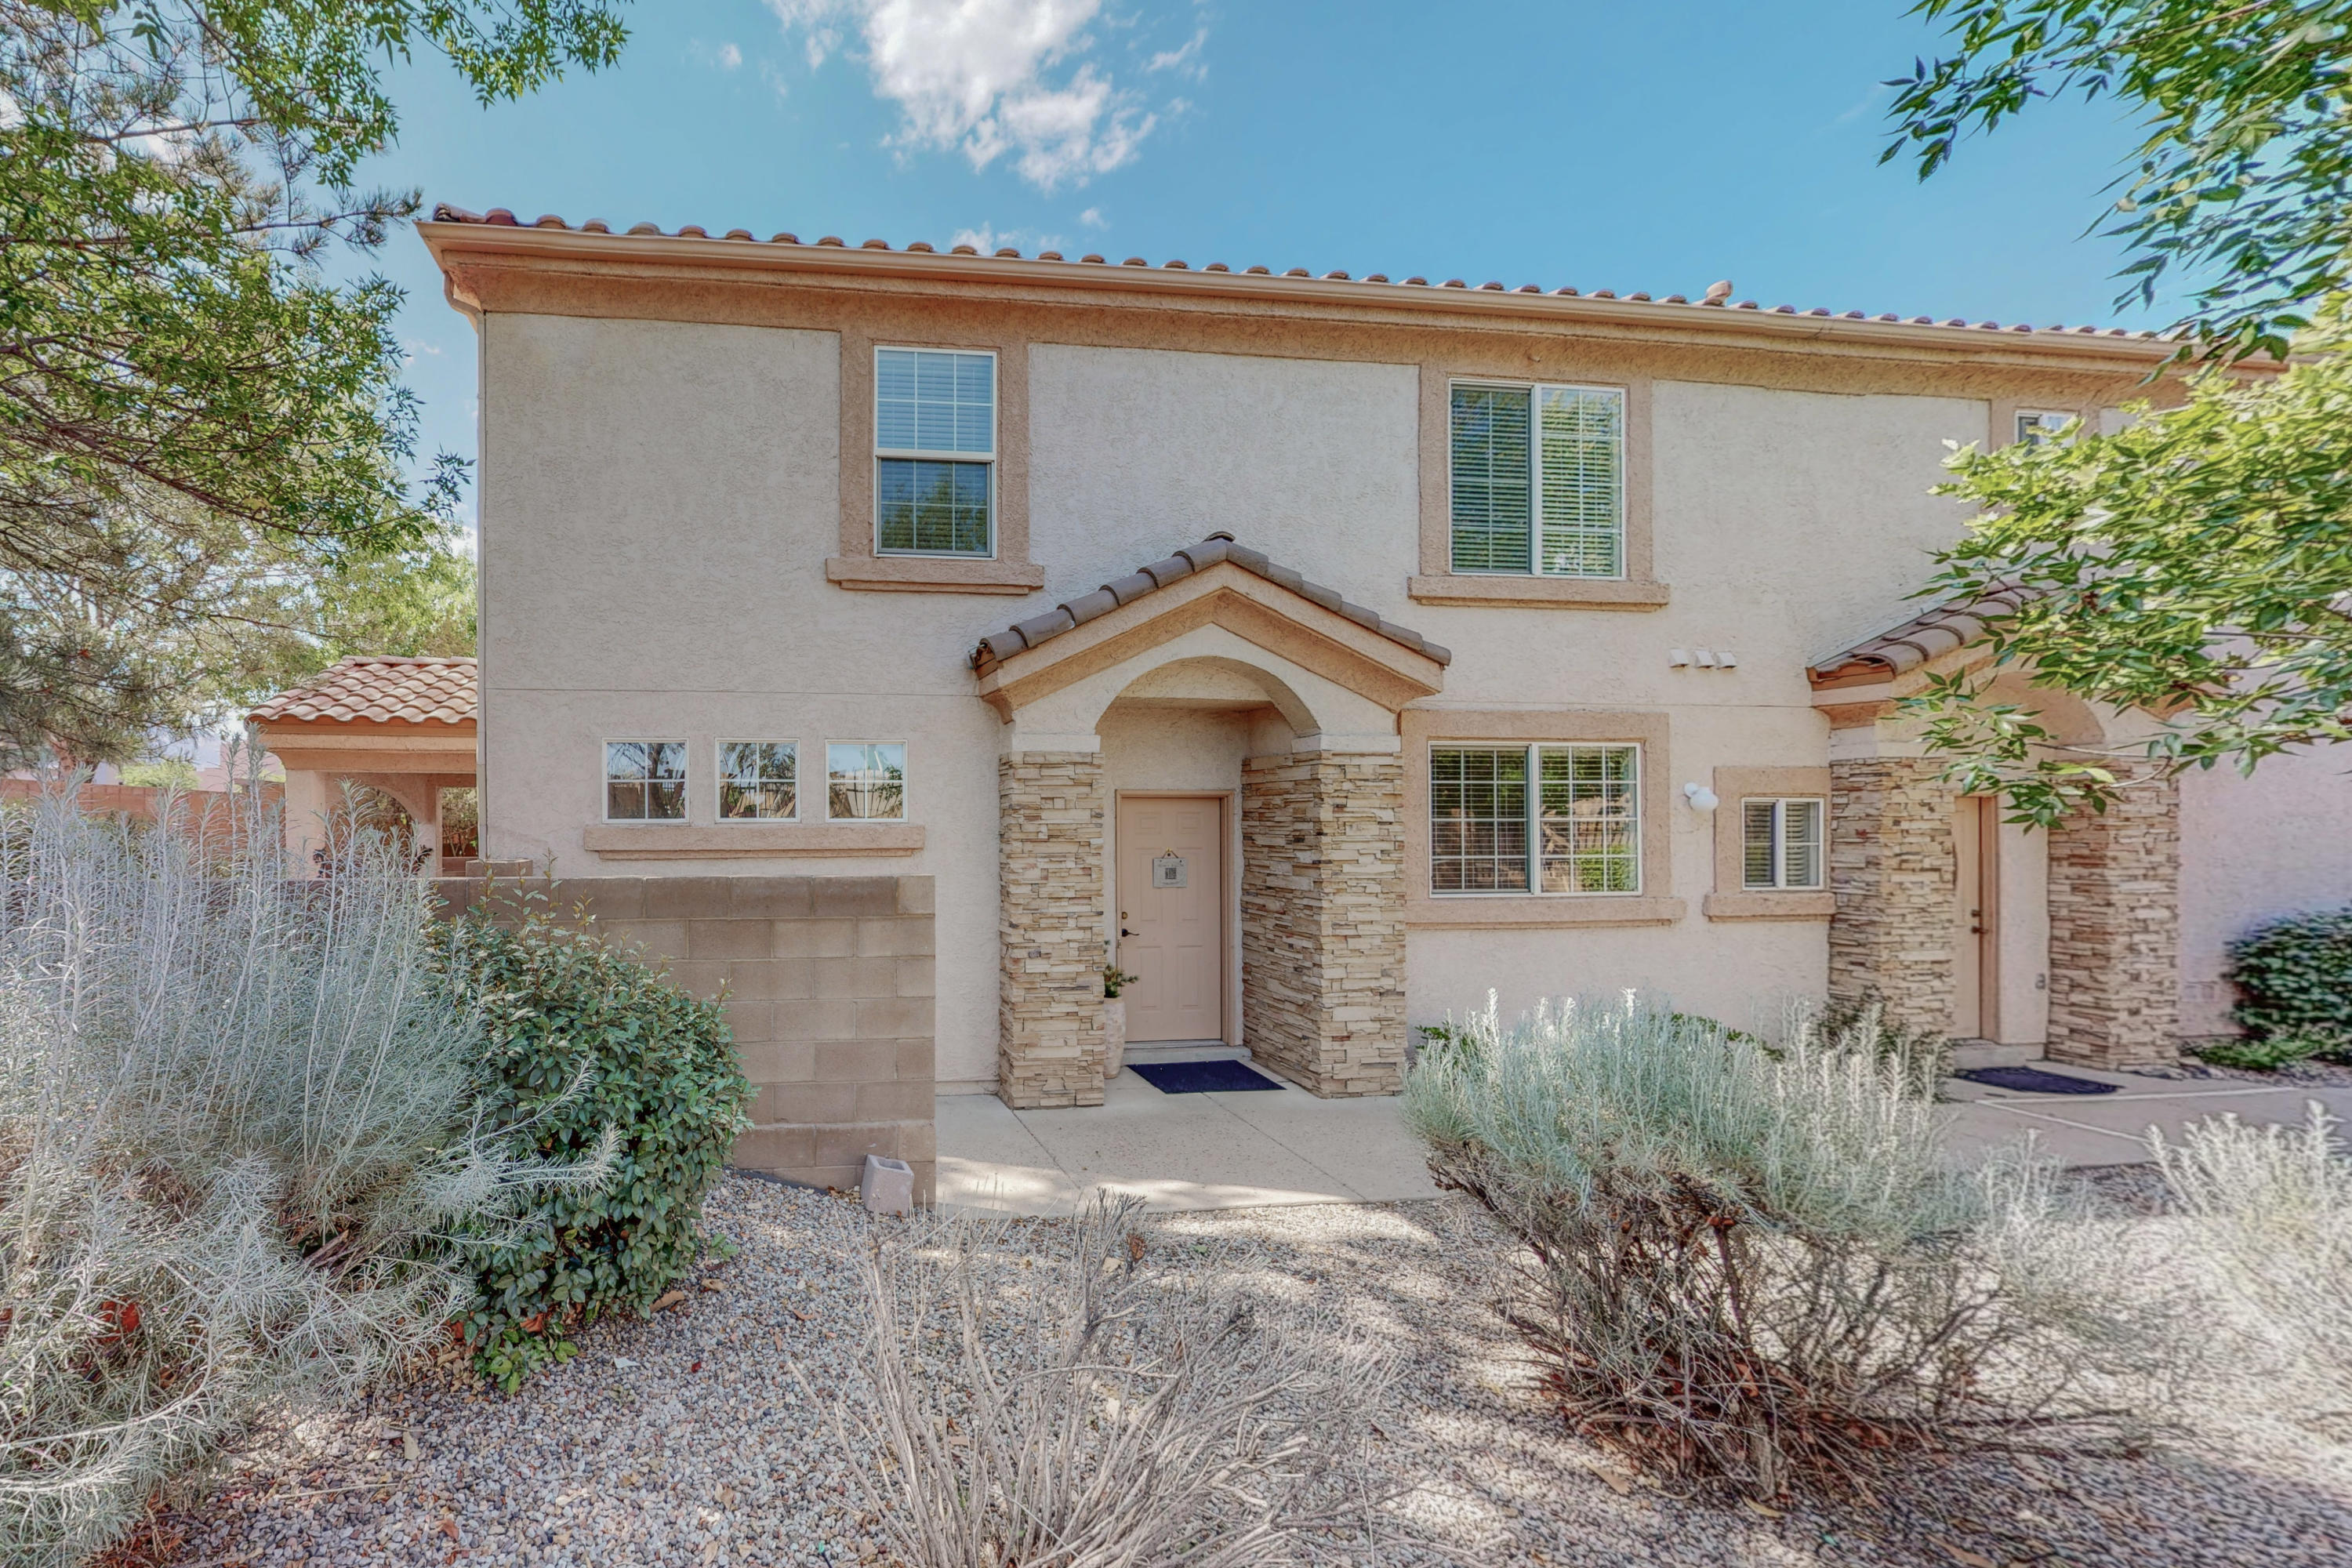 Great condo with TWO MASTER Suites. Located near shopping and restaurants. Upgrades Berber carpet and porcelain tile throughout. Come see this great home located in a gated community.